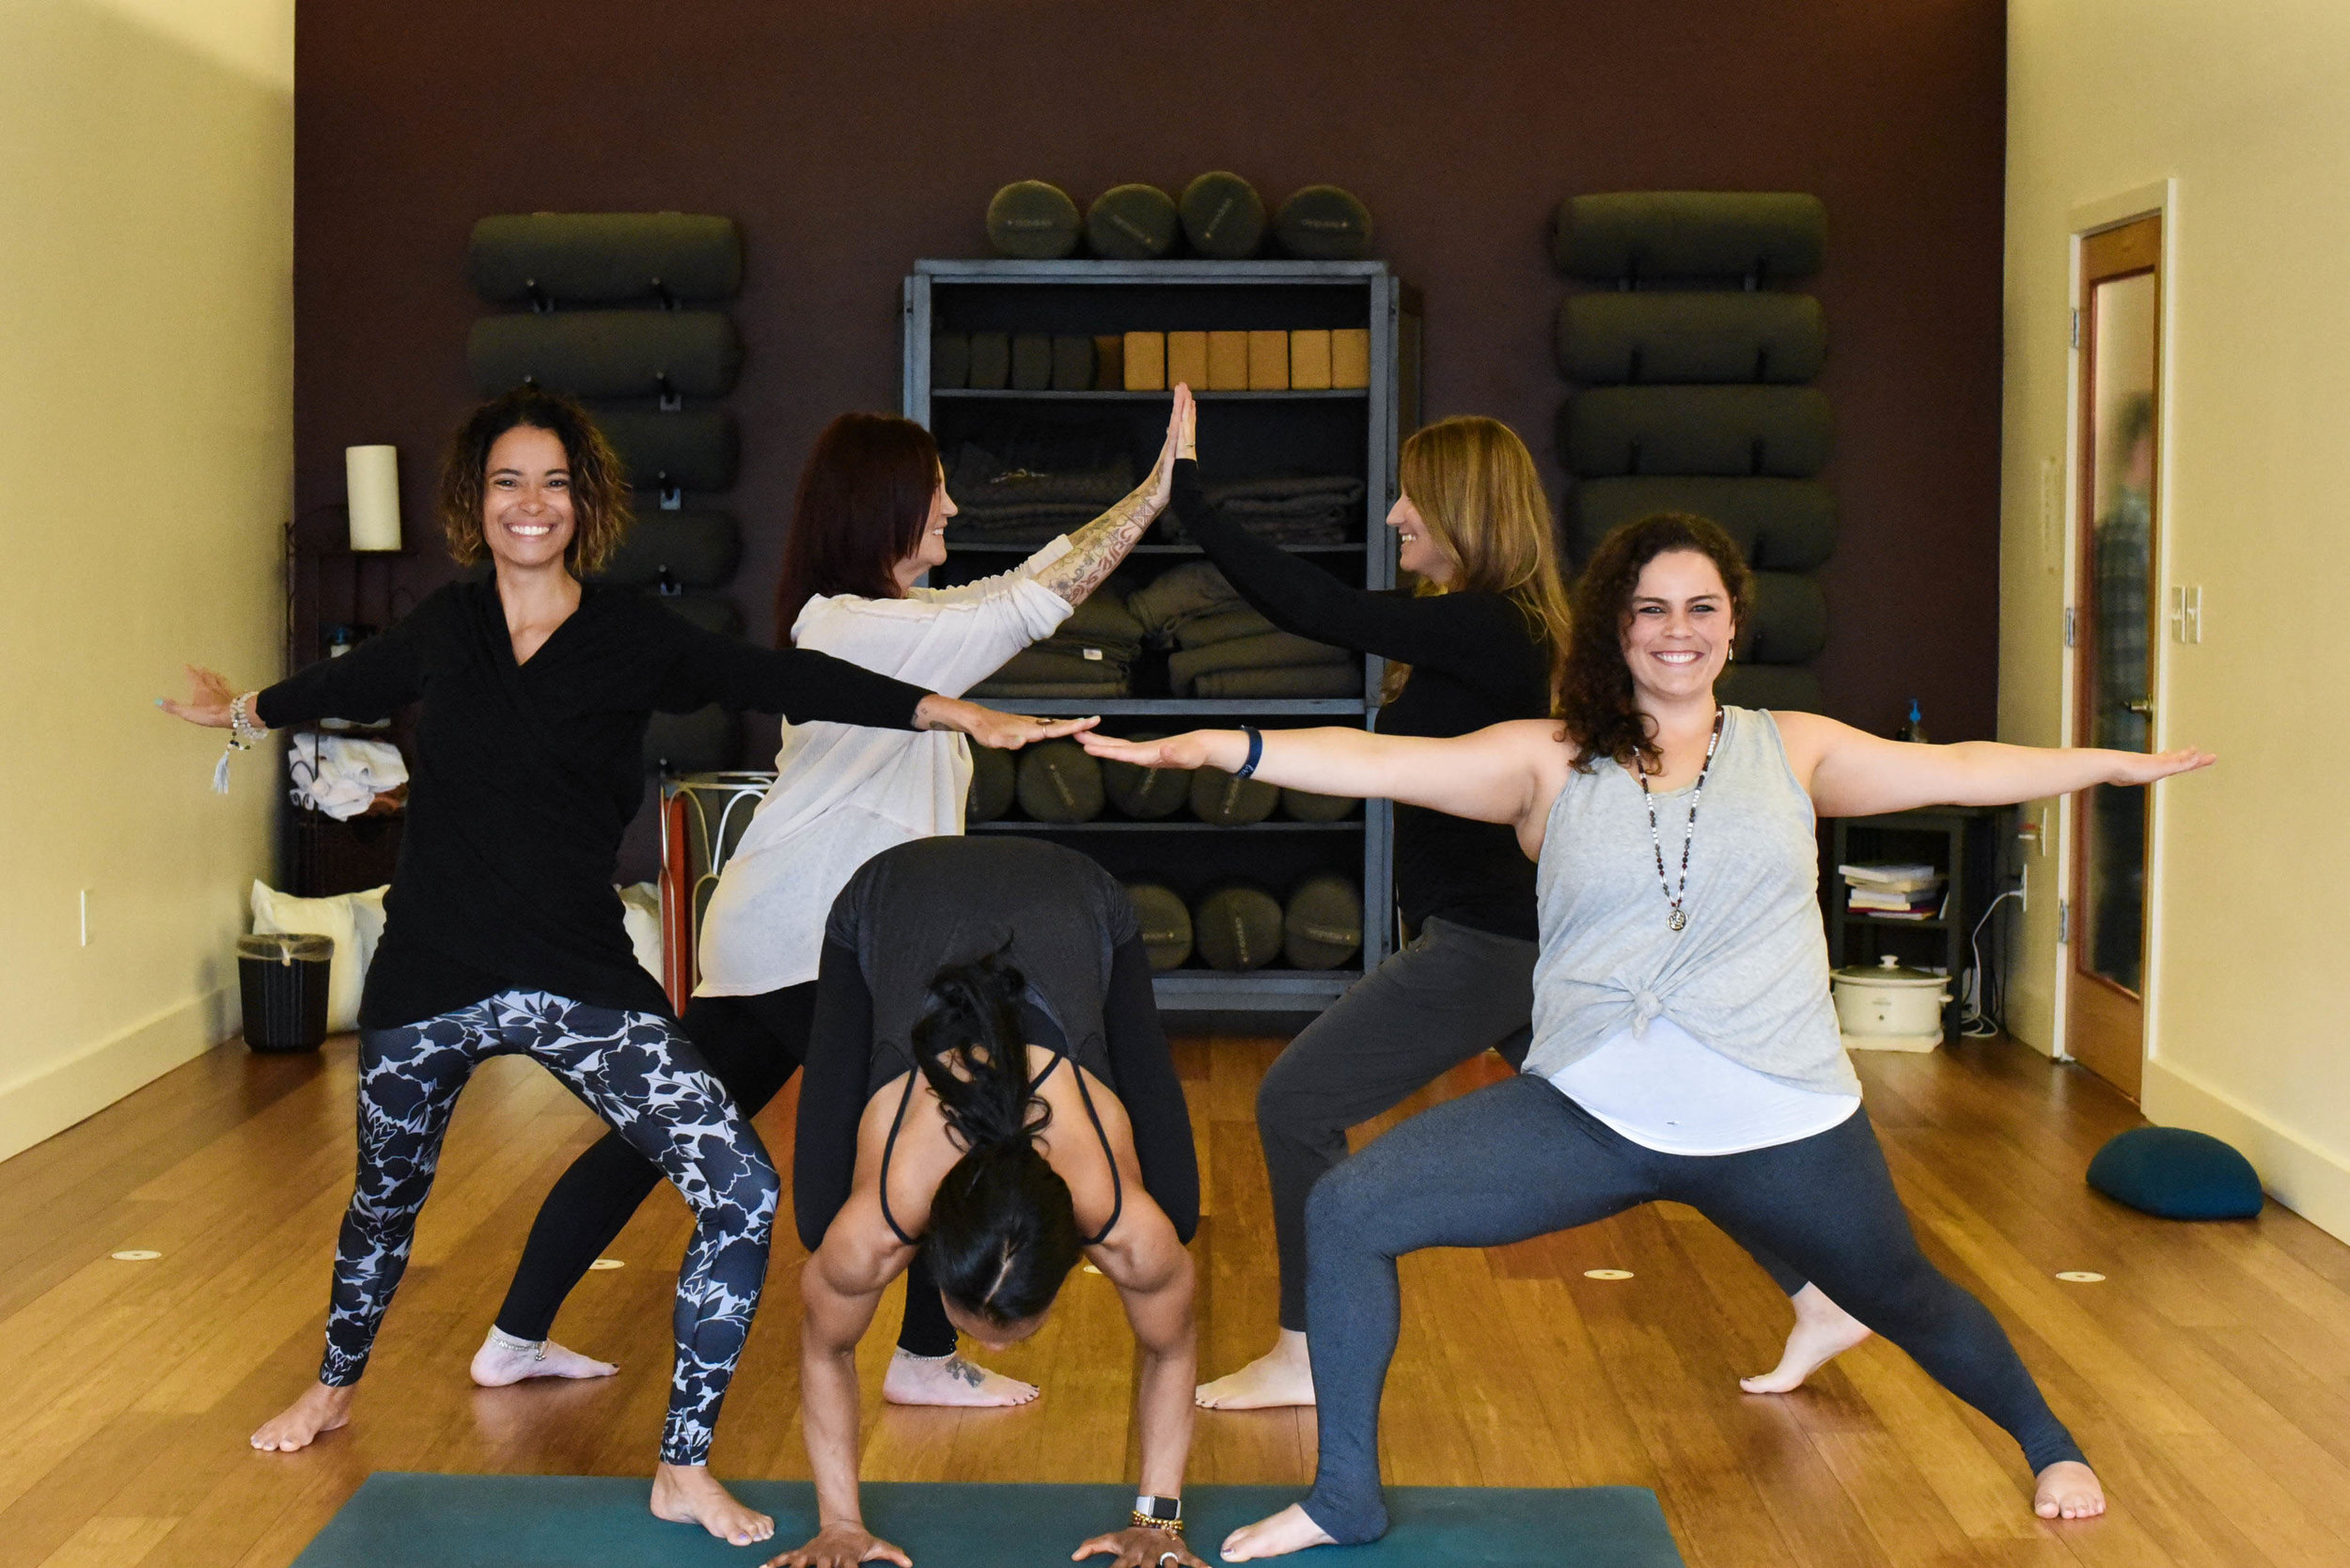 """Be a Part of Our Community - """"I so appreciate Renee's laid-back and nurturing spirit. Yoga is meant to take us to a different place, mentally and physically, and Renee definitely provides both aspects in her practice. She's also not afraid to pick up the pace and kick our booties either which we are thankful for! Overall, it's the best hour of my day and I am so happy Firestar is here in Lincoln!!!"""" - Shae Lyn B."""